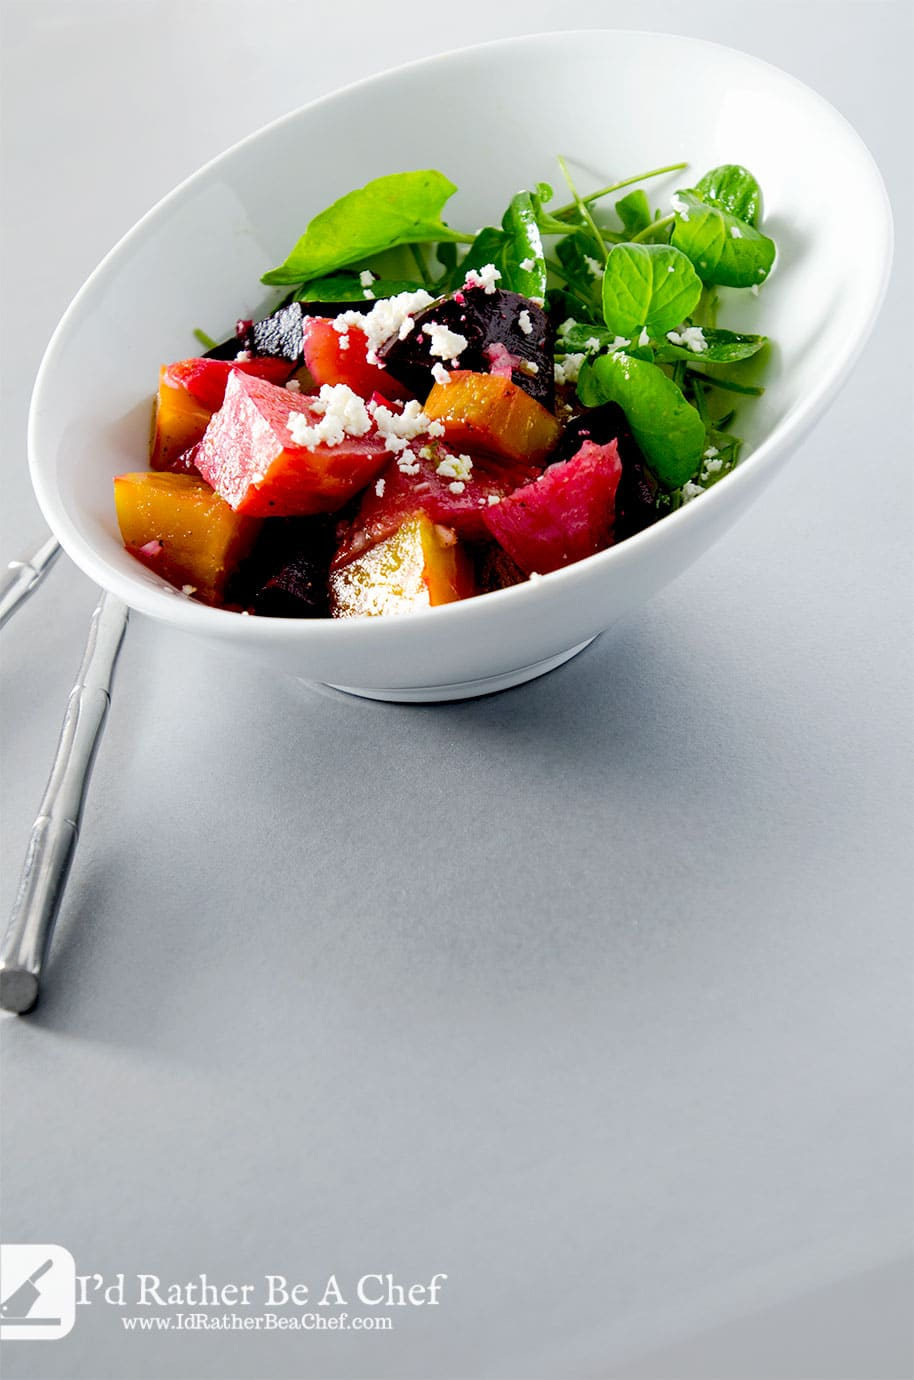 Enjoy this roasted beet salad with goat cheese any day of the week. It is perfectly simple, perfectly balanced and delicious.